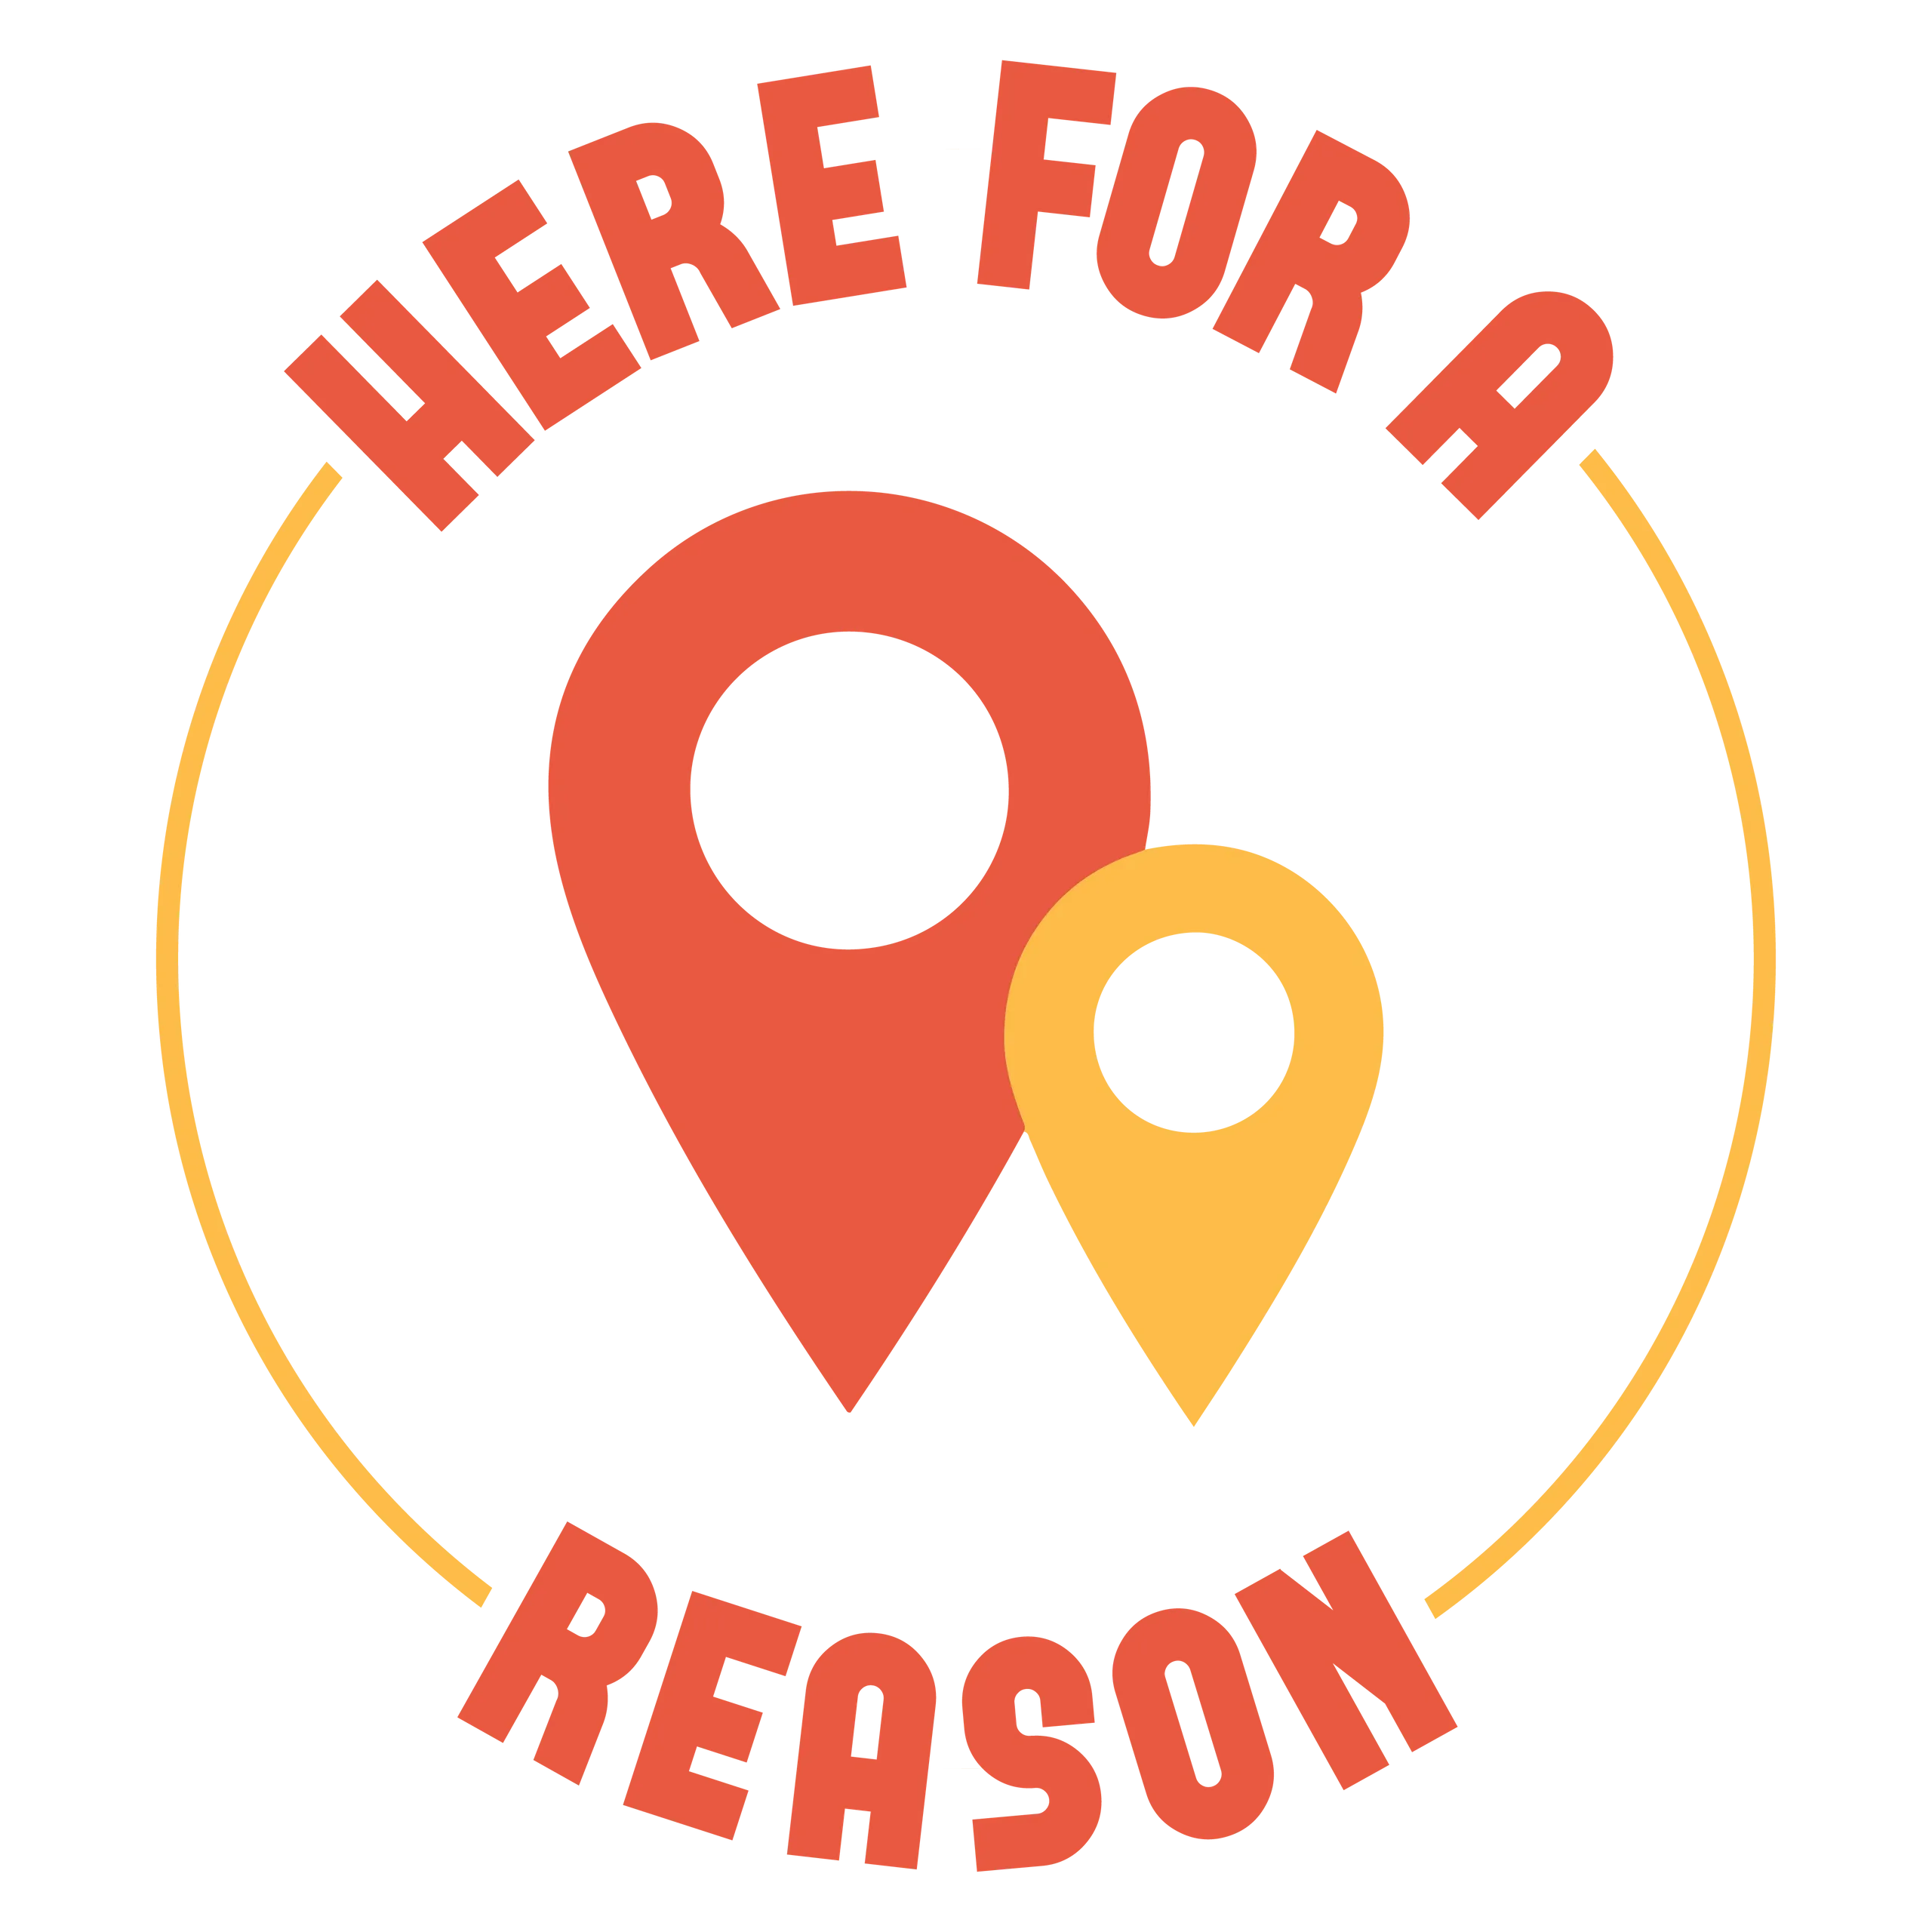 Here For A Reason, Inc.